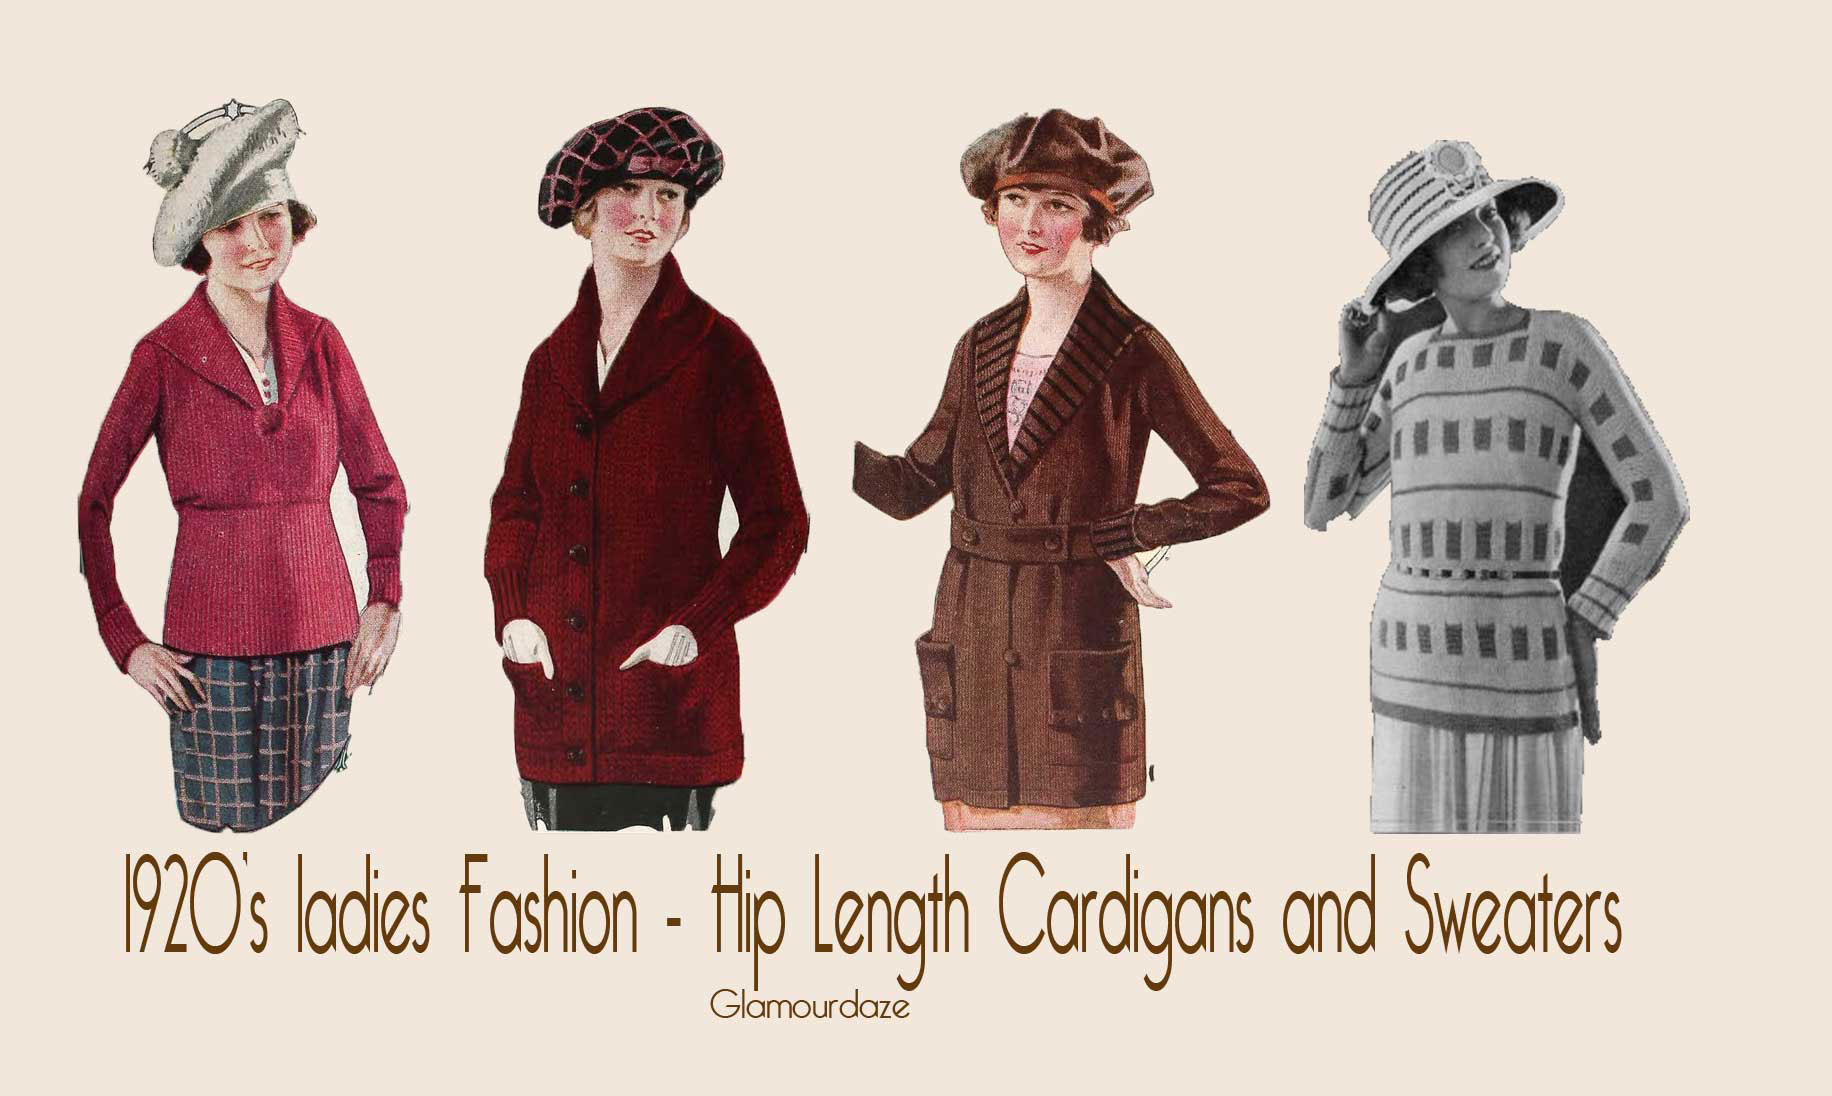 Downton Abbey What 1920s Fashions To Look Out For Glamourdaze